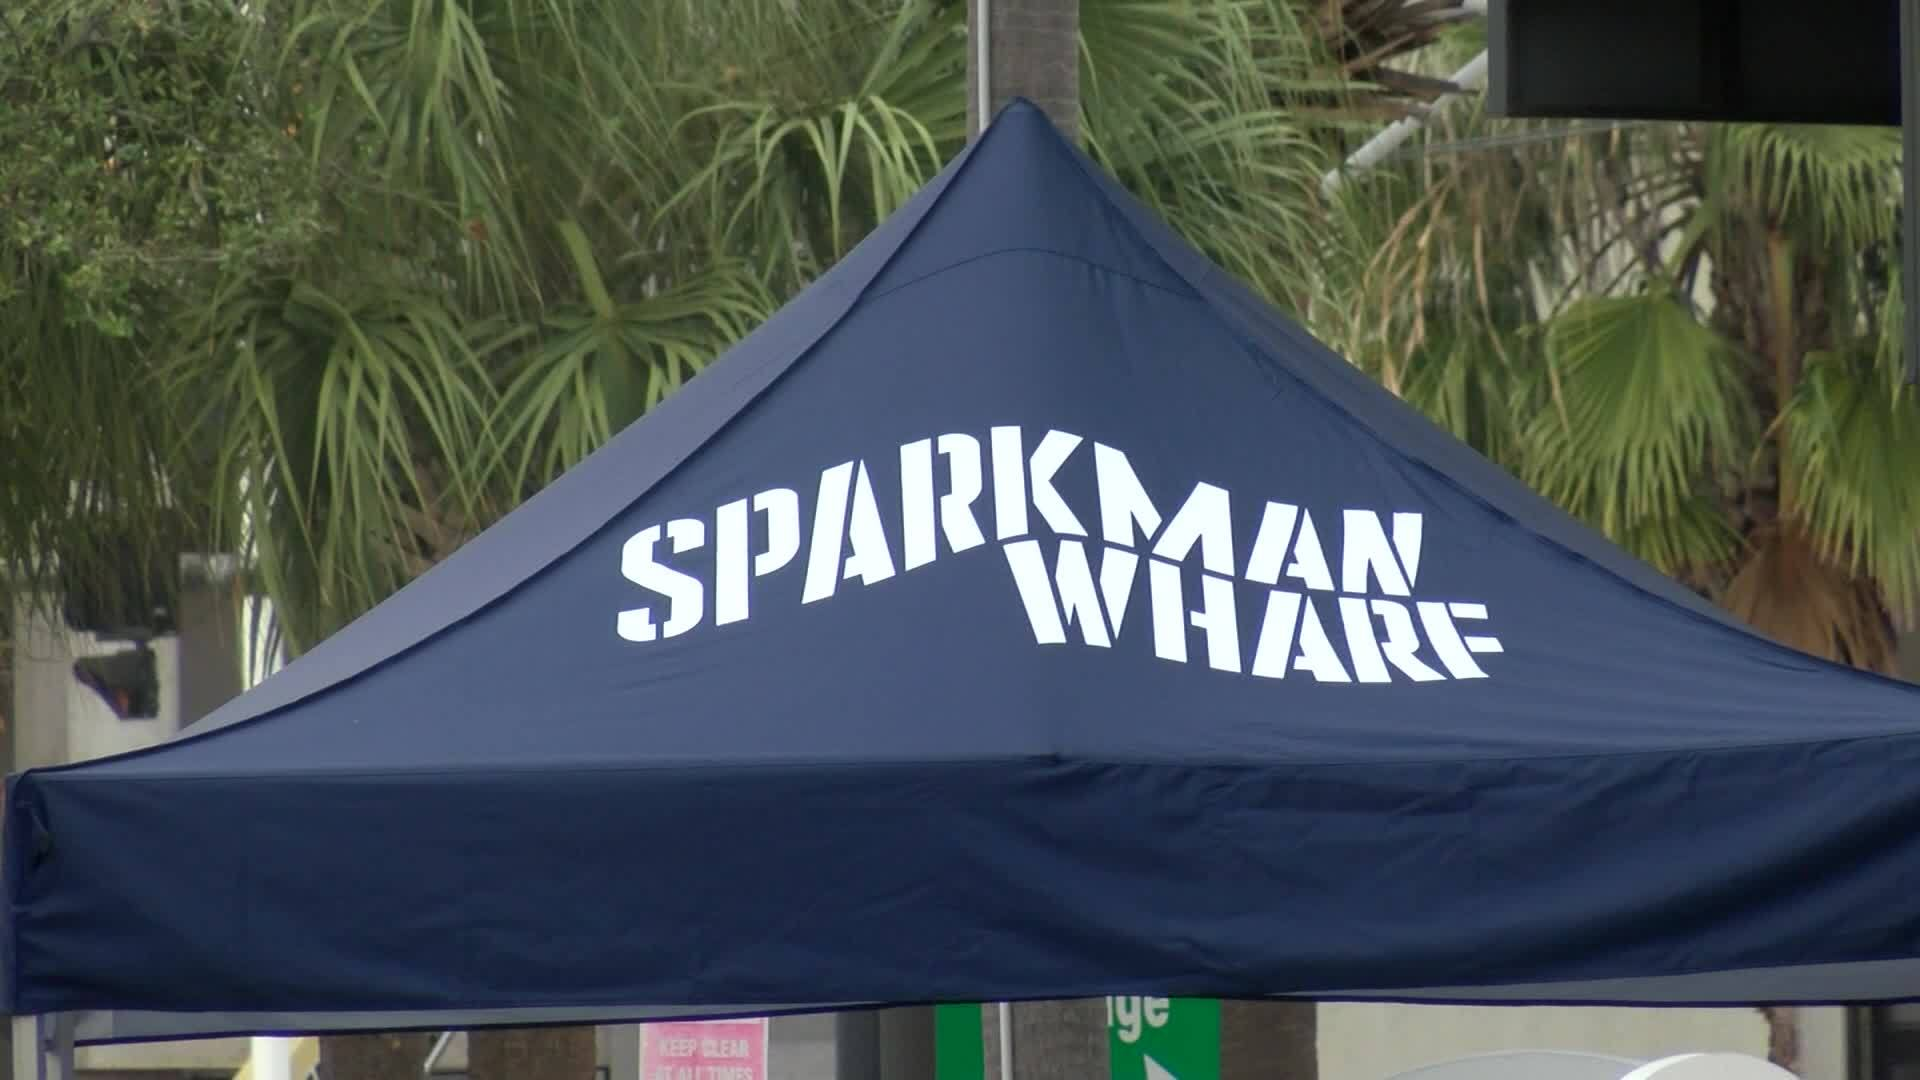 Sparkman_Wharf_grand_opening_4_20181126193255